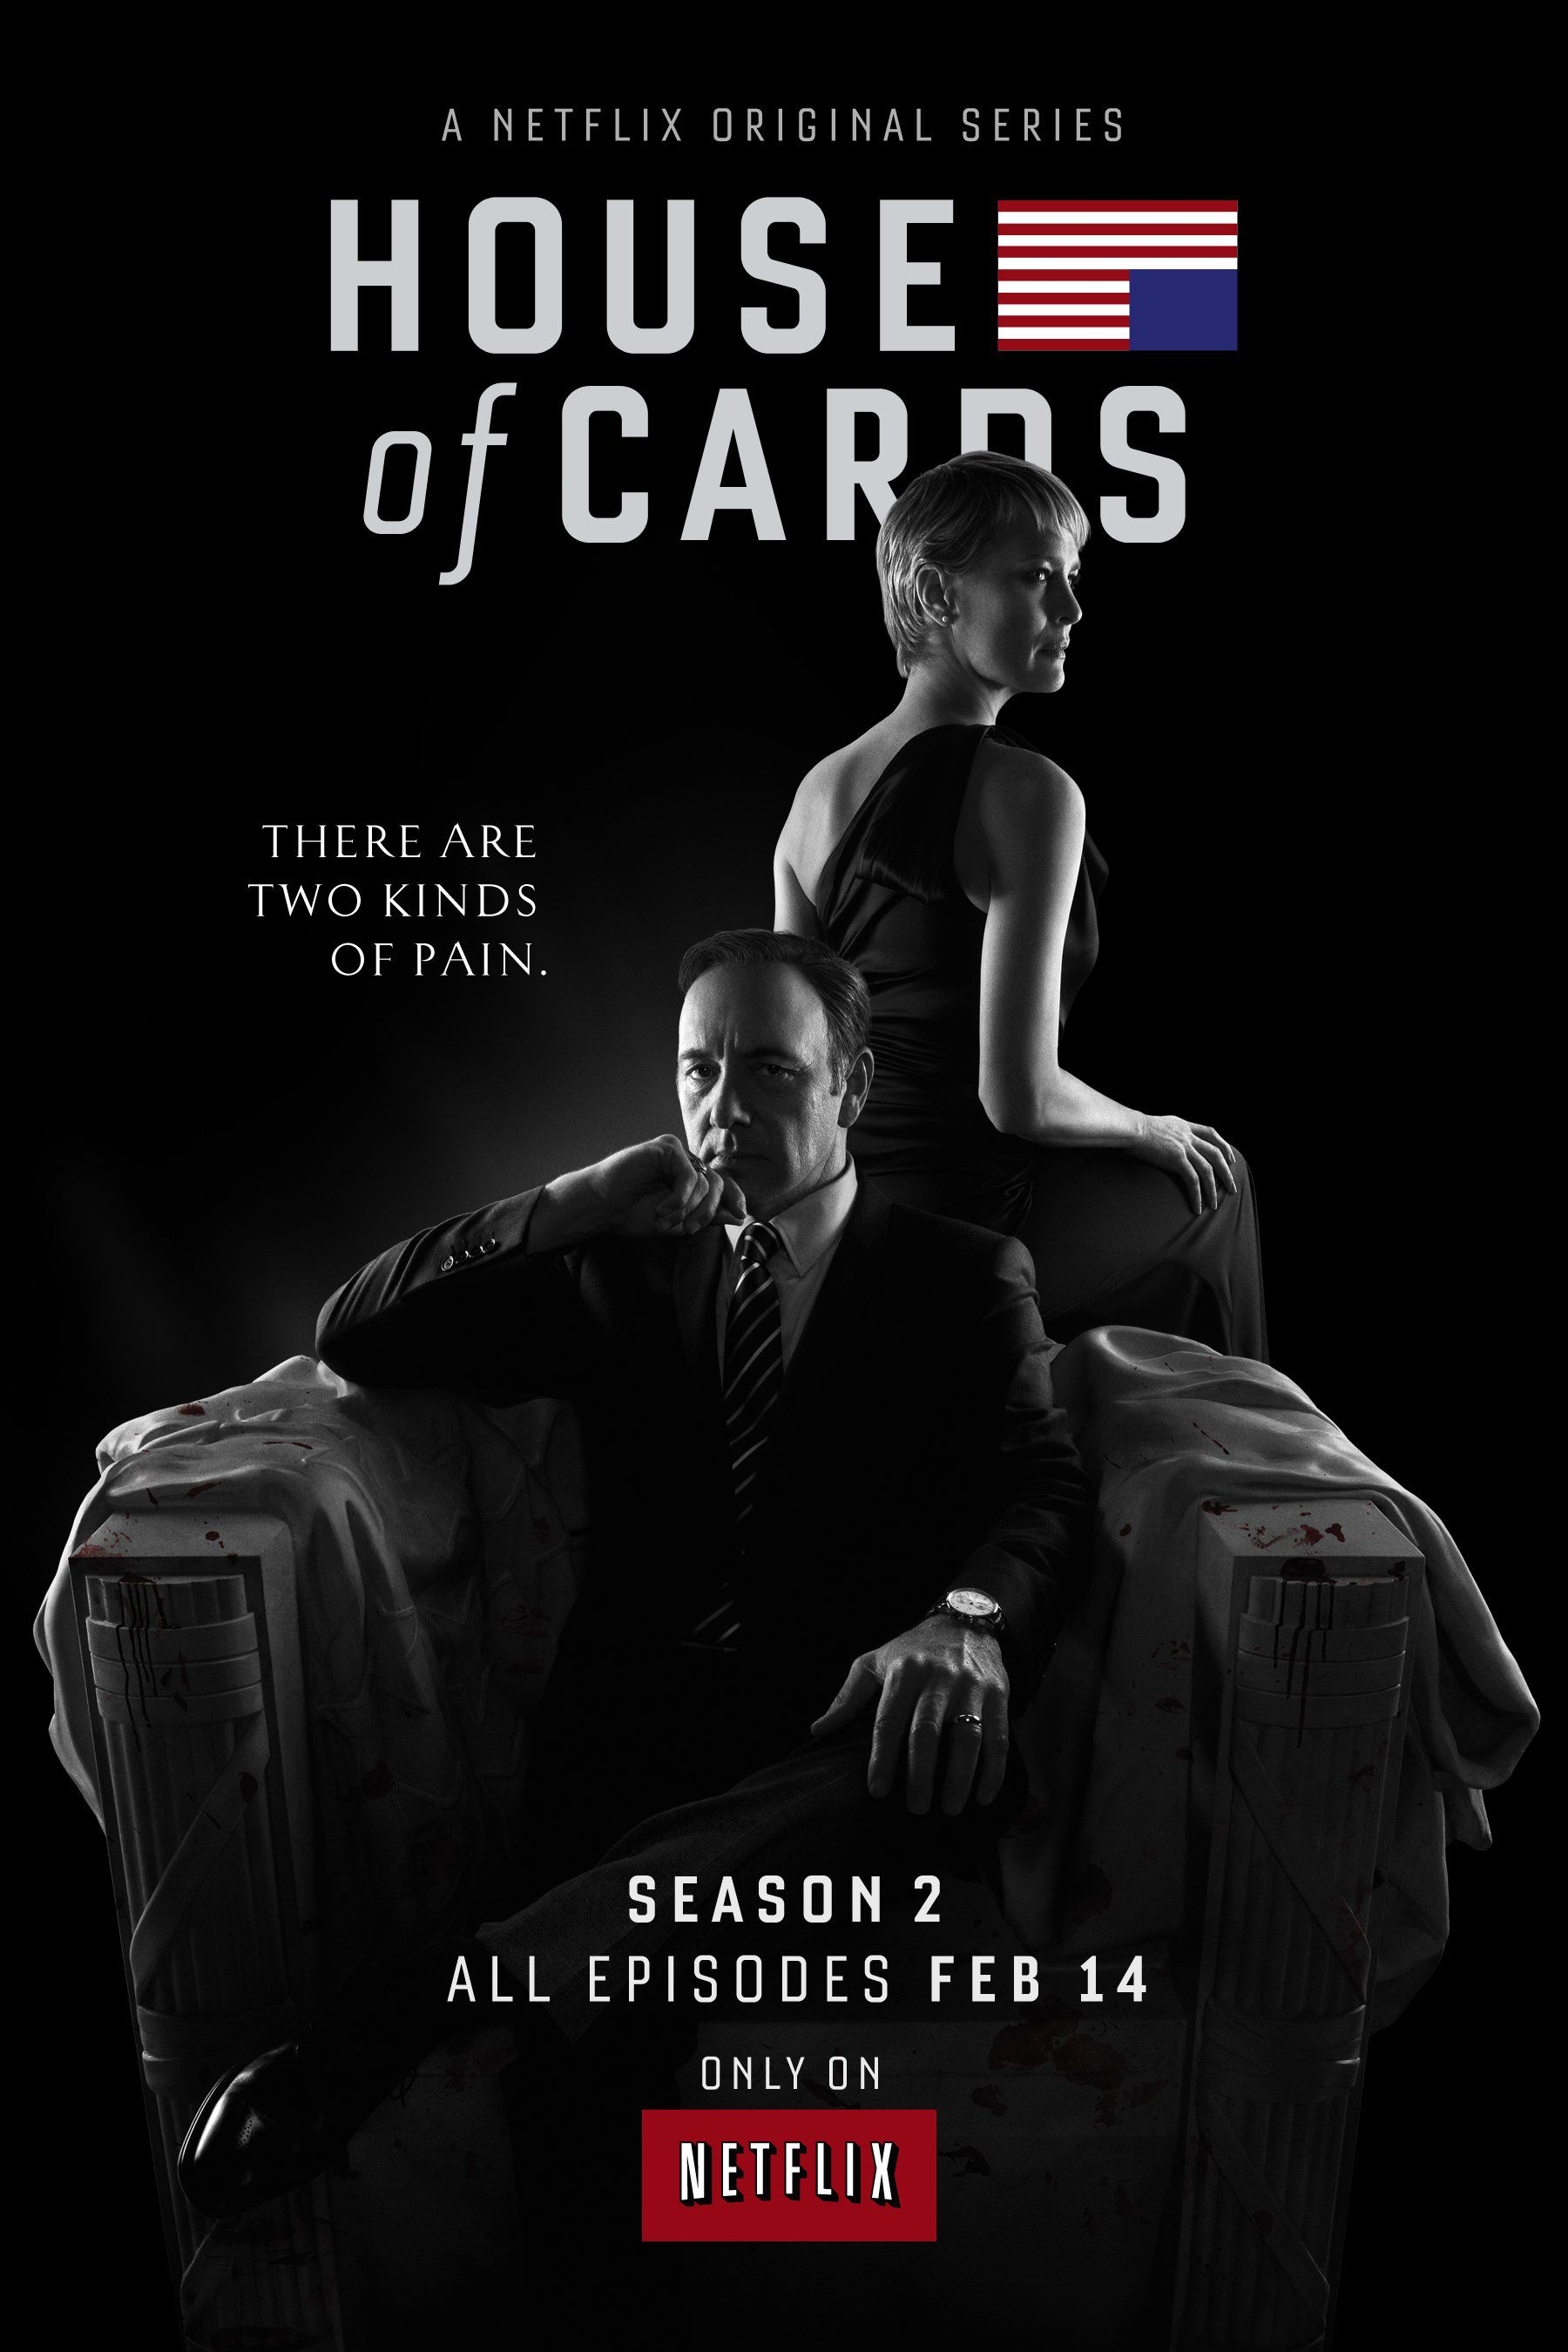 Voir Film House of Cards - Série (2013) streaming VF gratuit complet